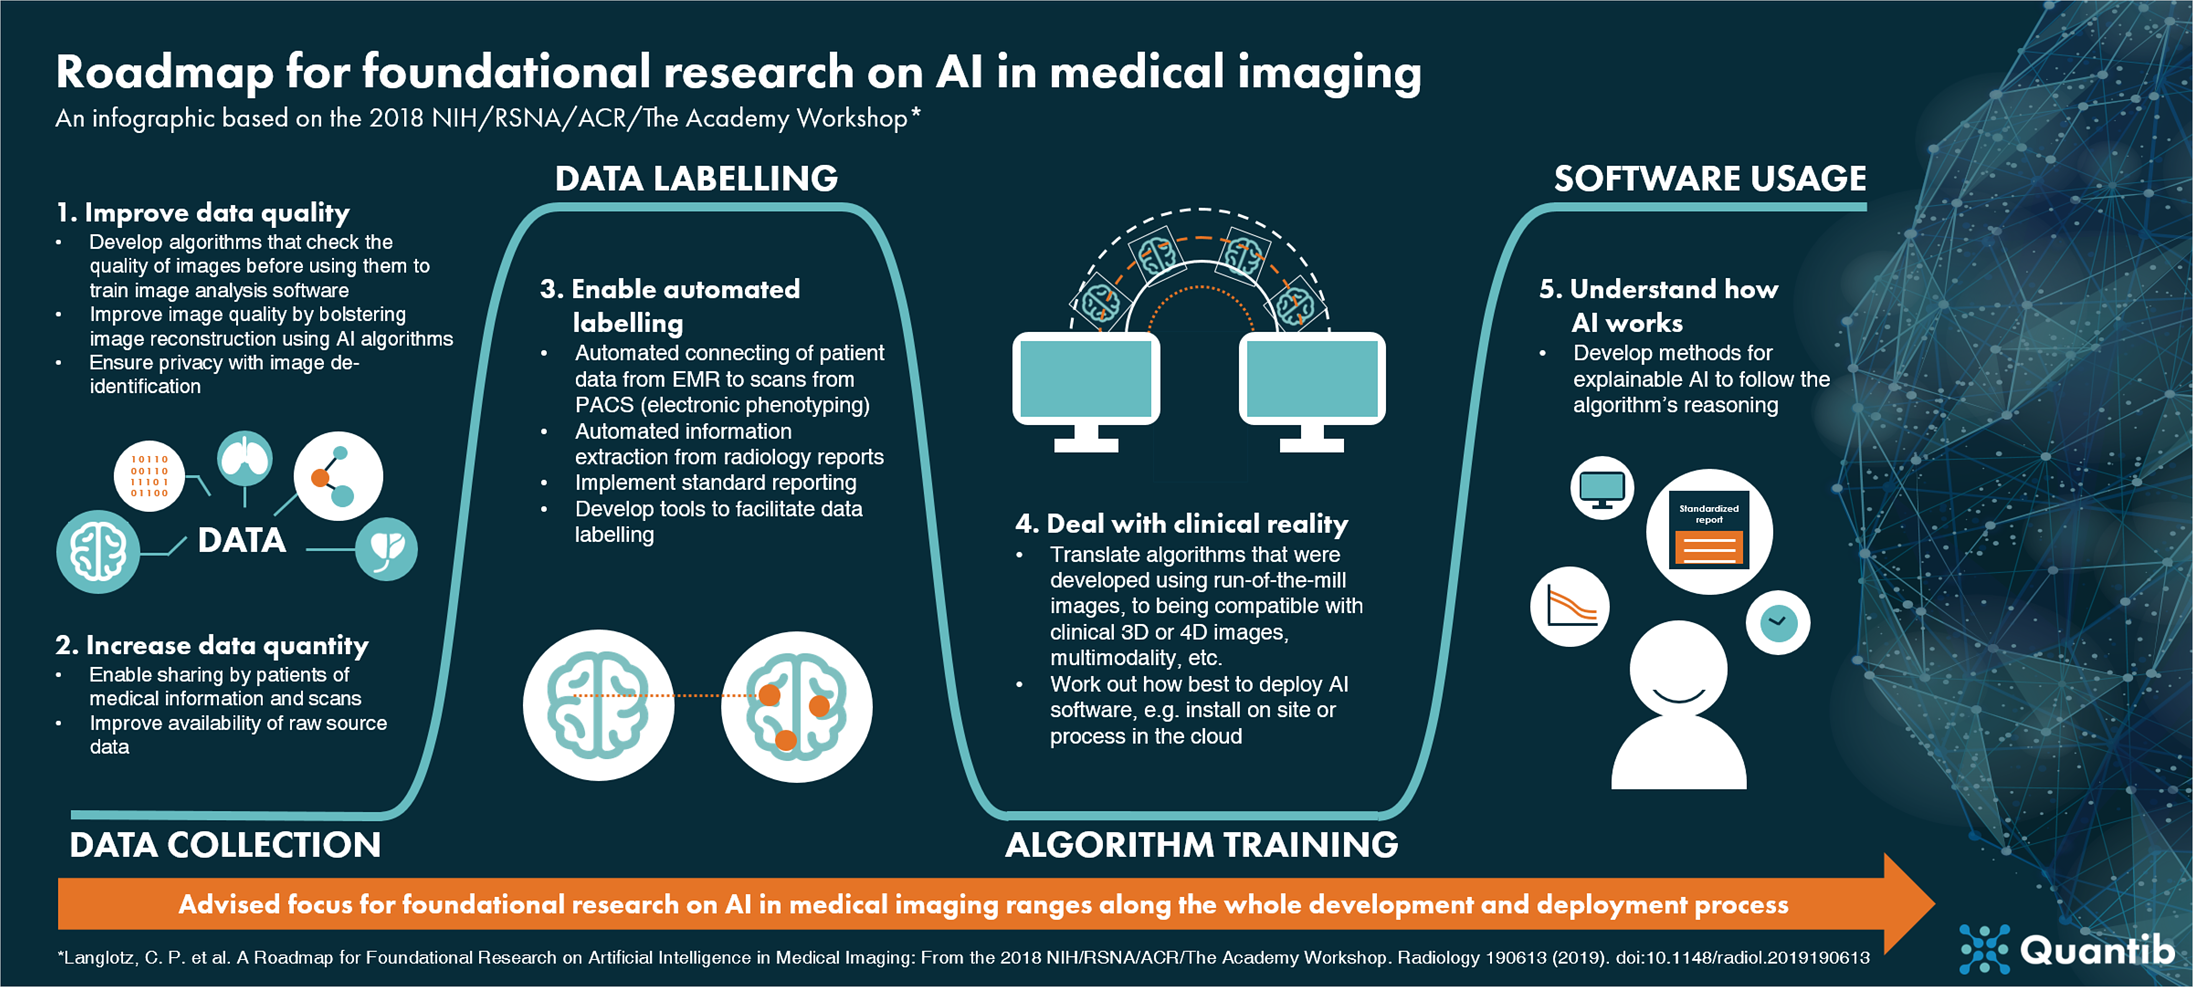 190426 - Infographic - Roadmap to AI in medical imaging